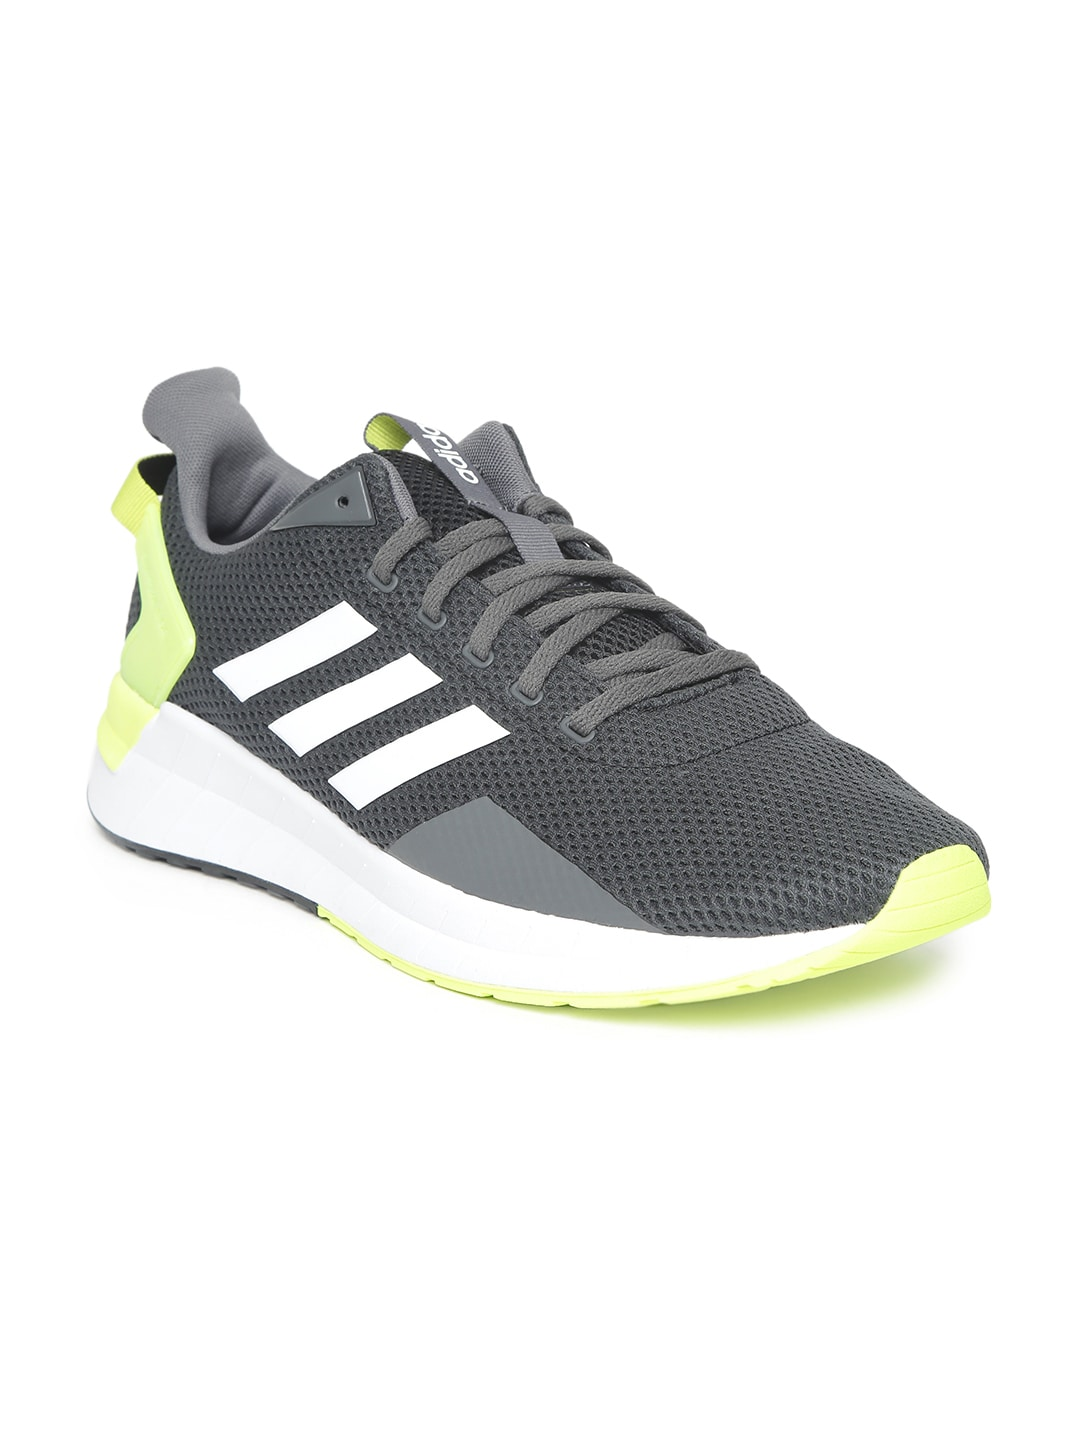 0d8186c2011c53 Adidas Sports Shoes - Buy Addidas Sports Shoes Online